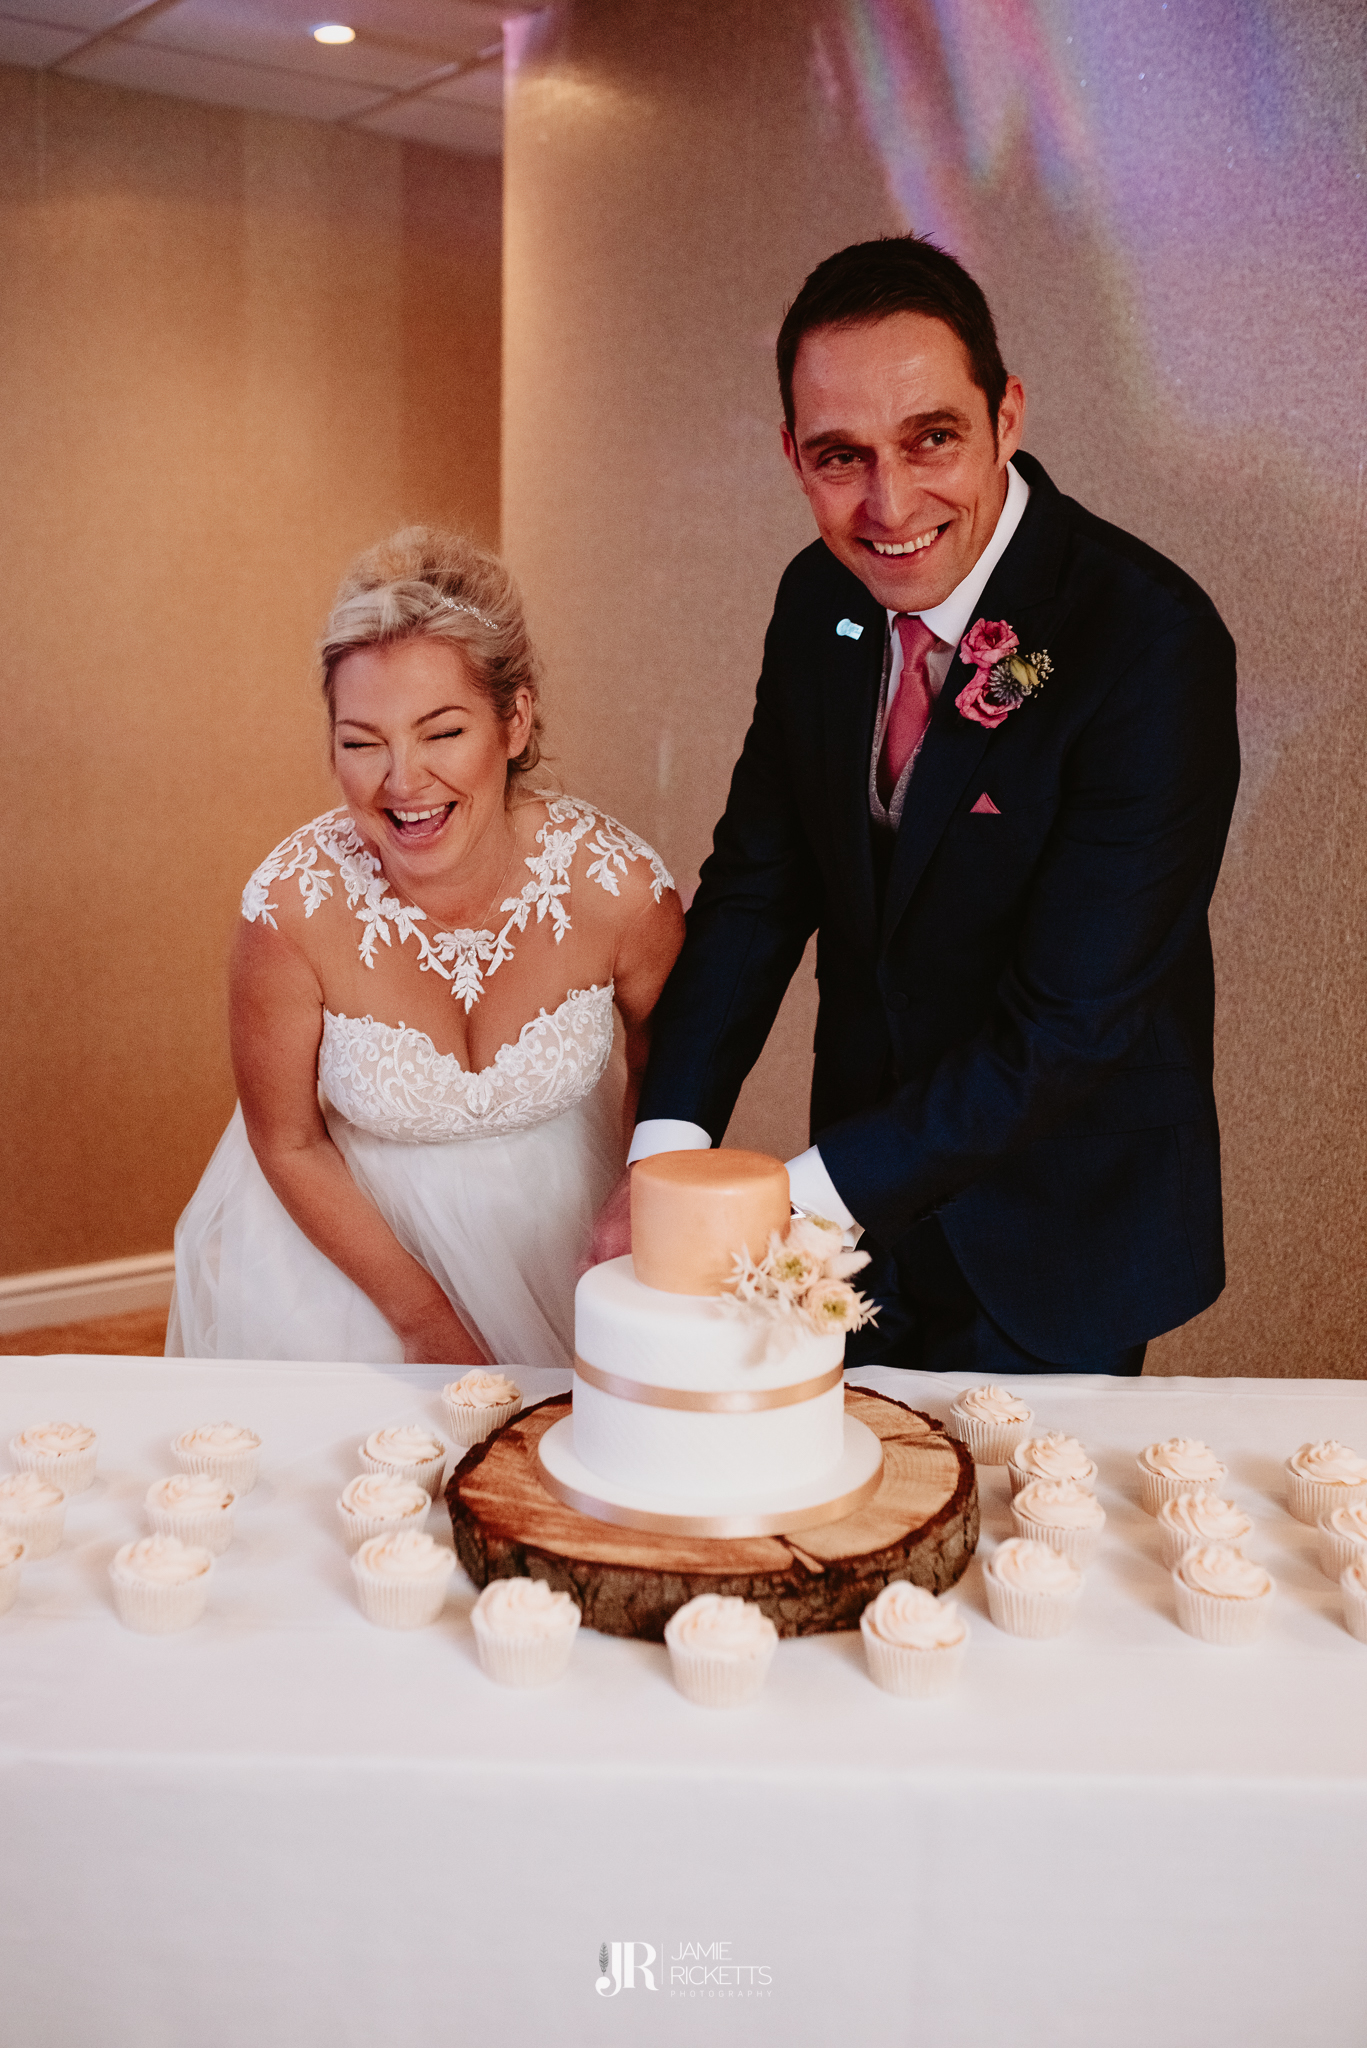 Wroxeter-Hotel-Wedding-Photography-In-Shropshire-By-Shropshire-Wedding-Photographer-Jamie-Ricketts-210.JPG